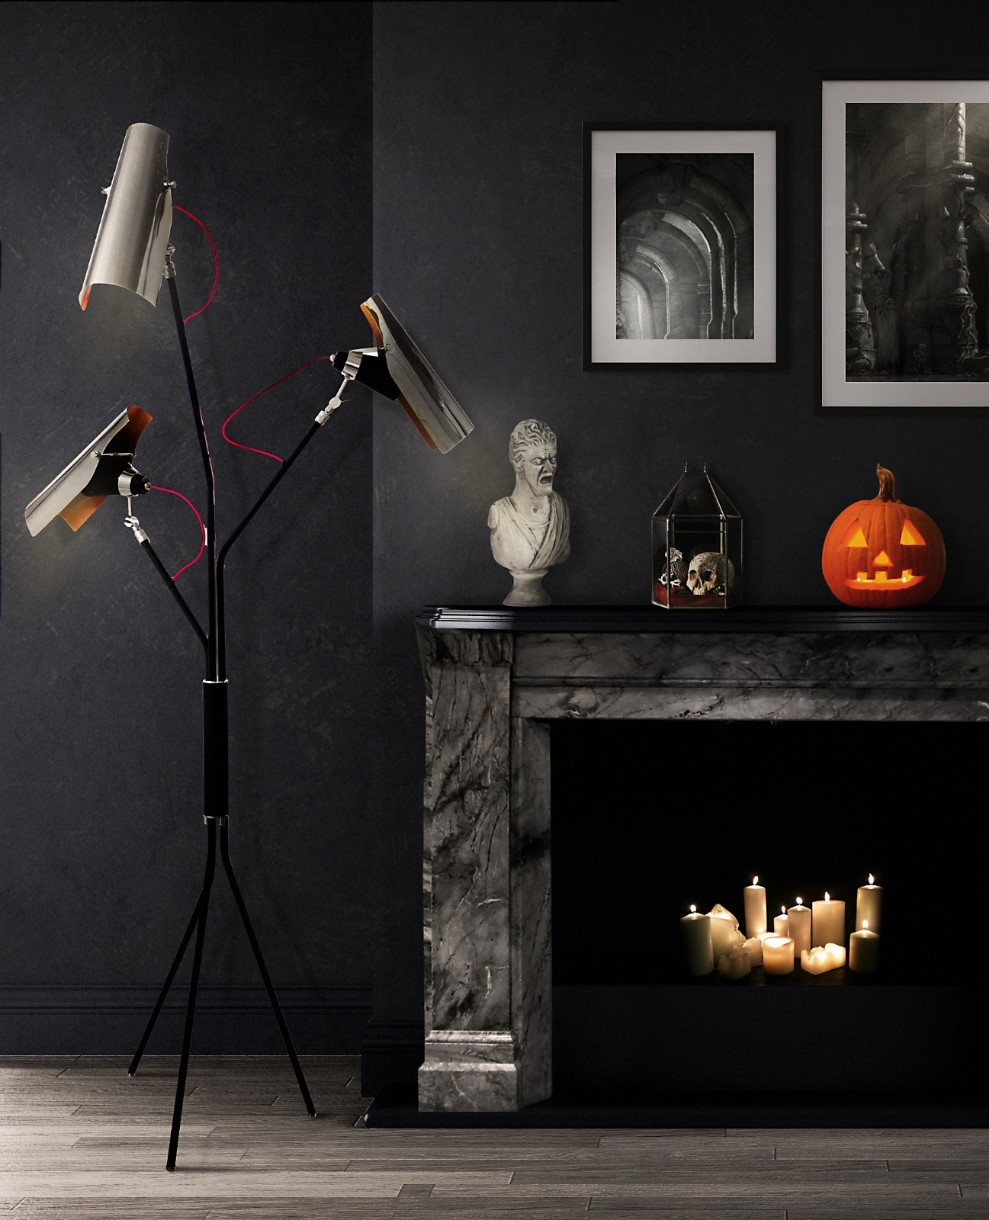 Get Inspired By These Halloween Décor Ideas And Give The Best Halloween Private Party Ever Seen! halloween décor Get Inspired By These Halloween Décor Ideas And Give The Best Halloween Private Party Ever Seen! 1